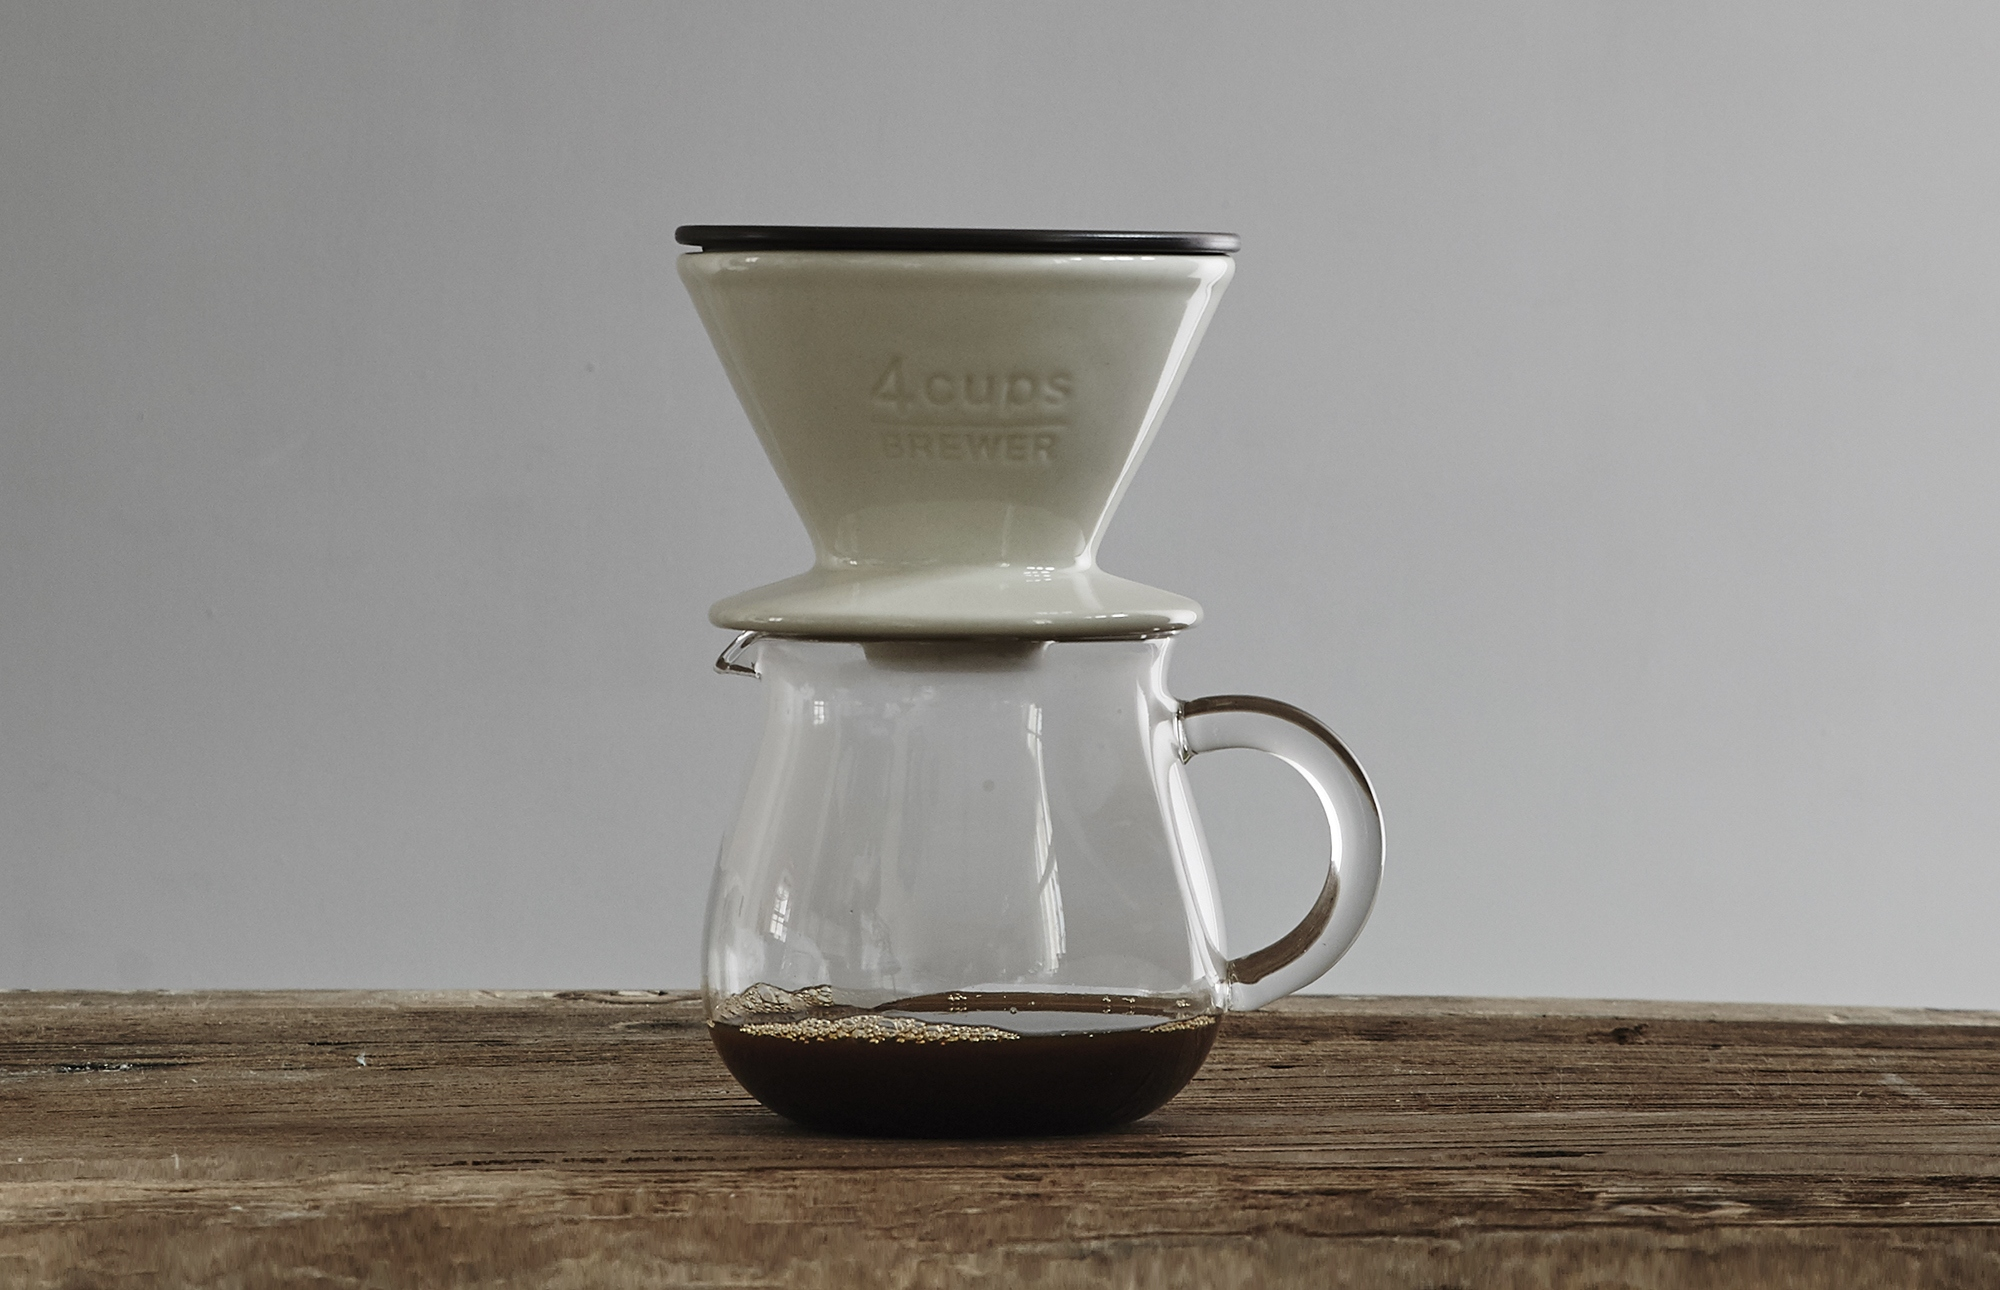 7383_427c1d9322-27631_1-slow-coffee-set-4-cups-white-zoom